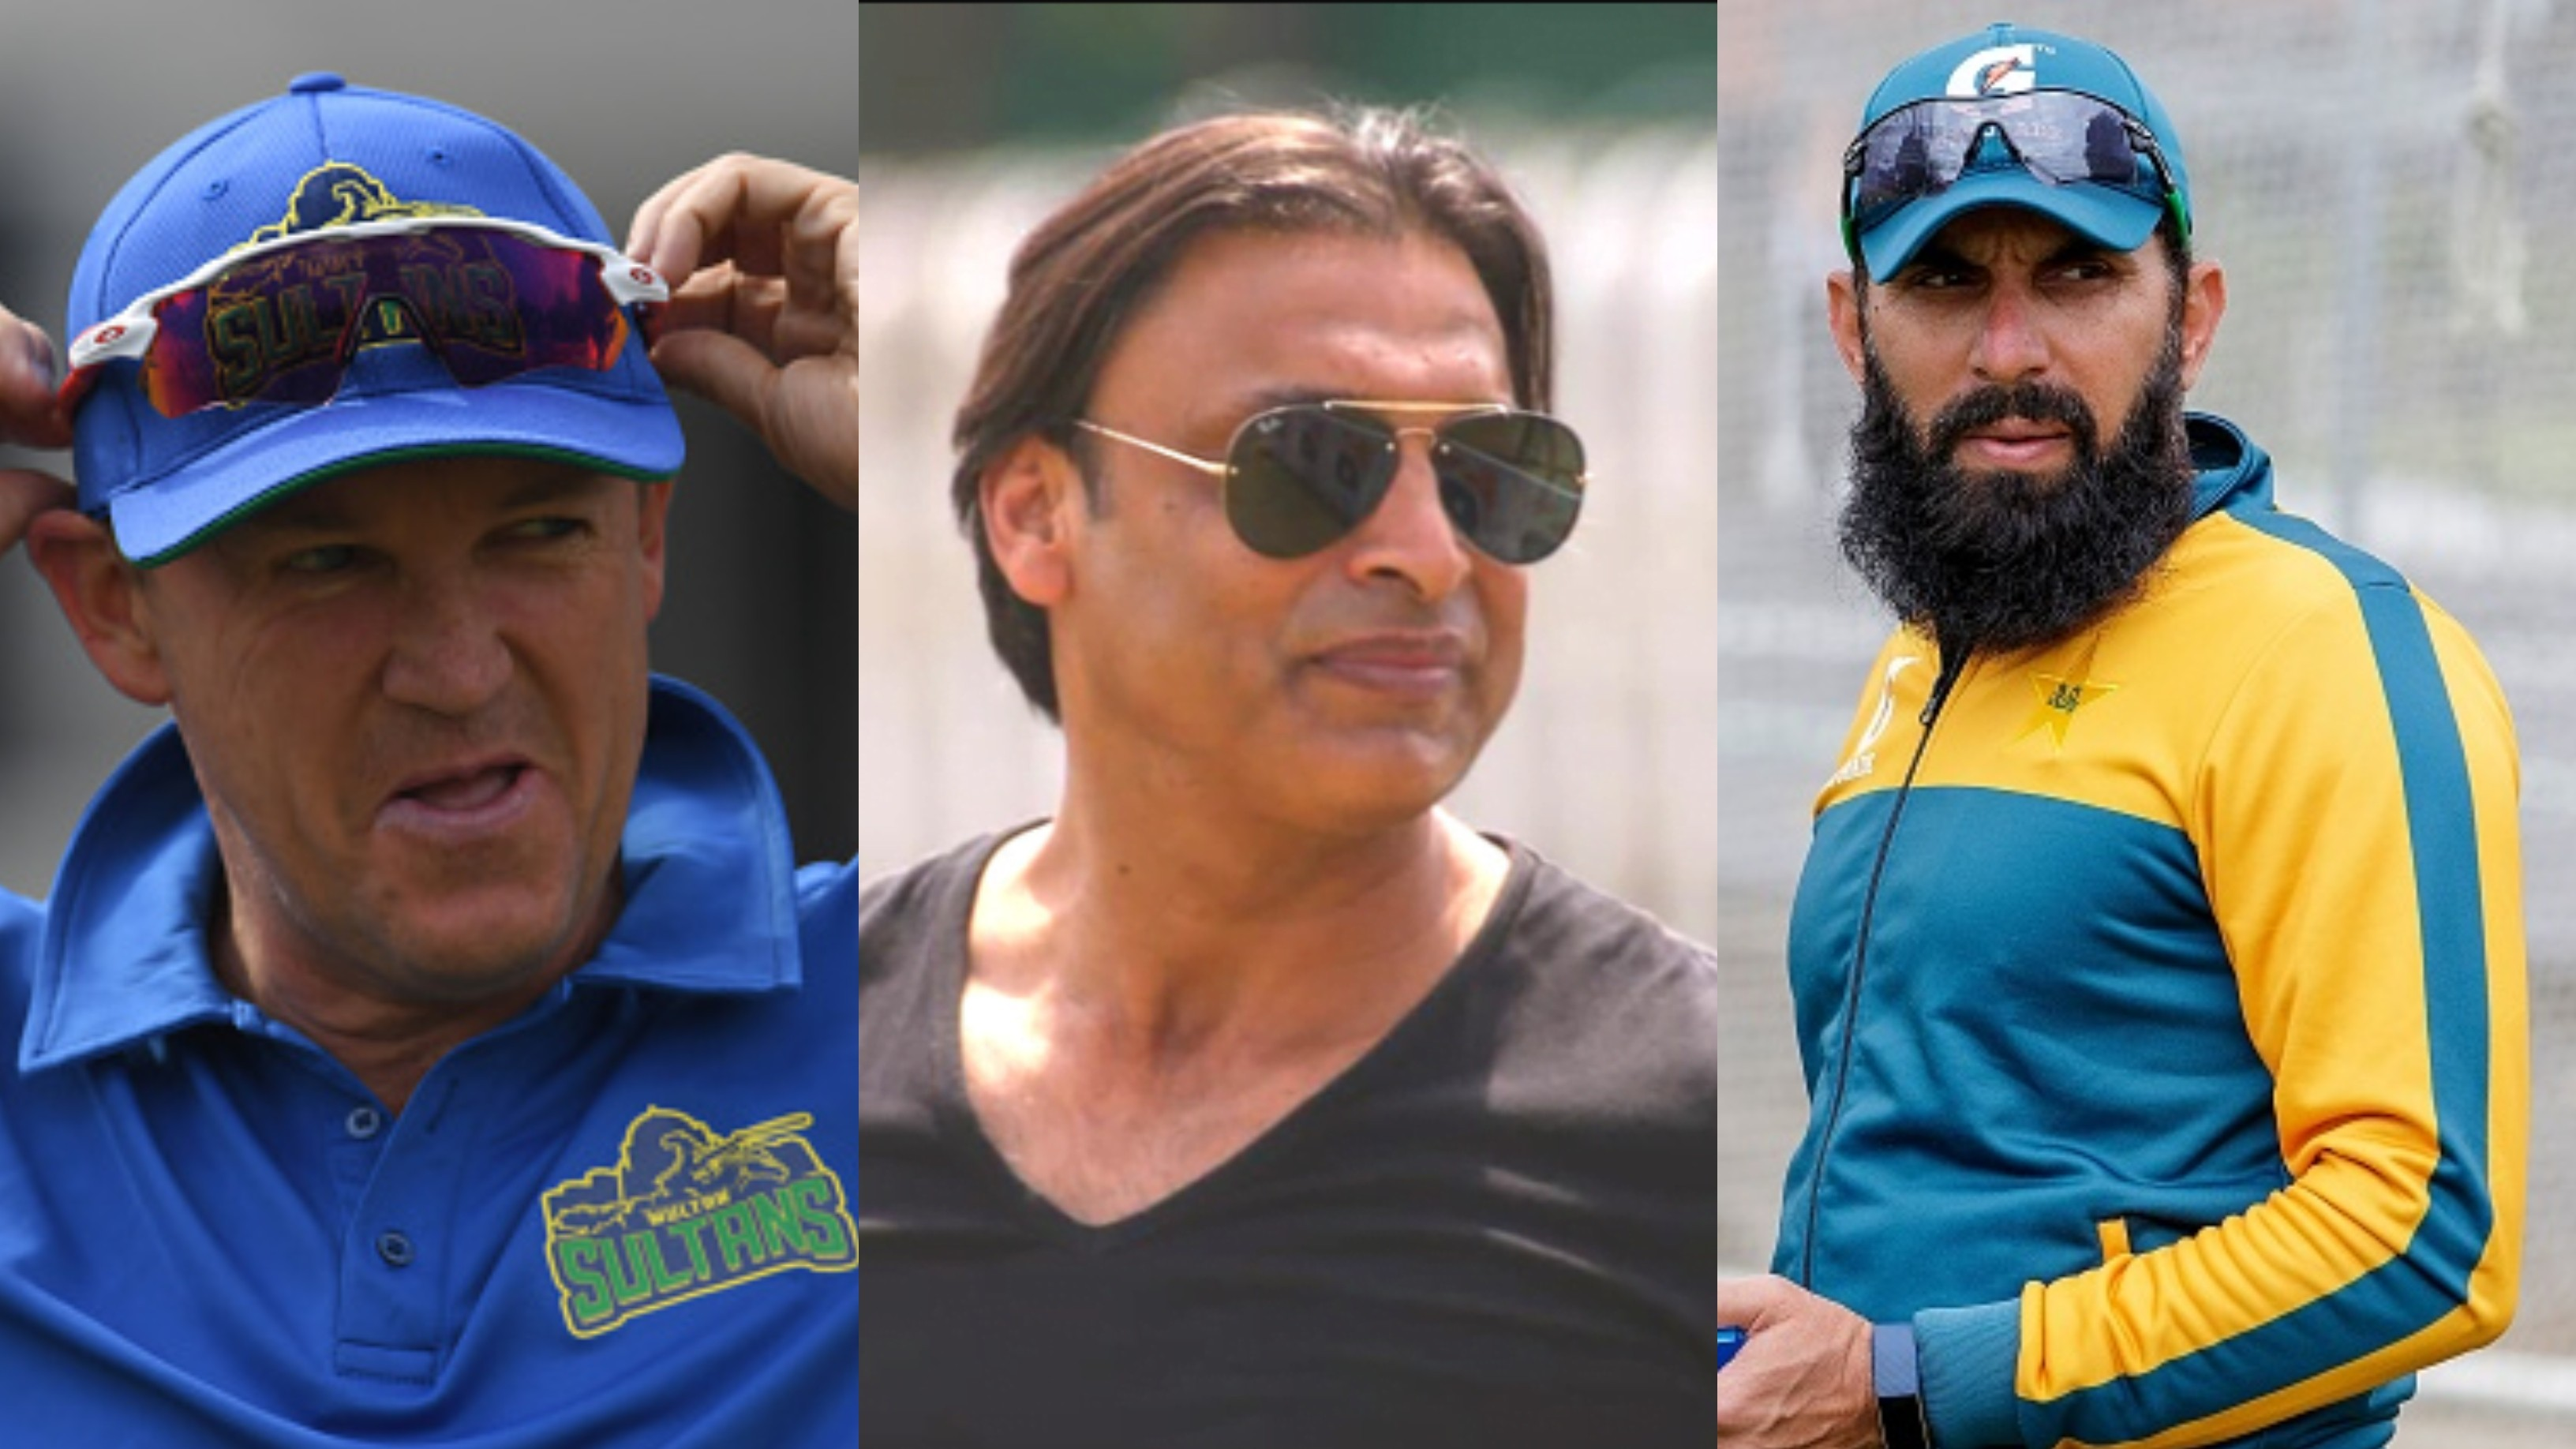 Andy Flower will replace Misbah-Ul-Haq as Pakistan's head coach, claims Shoaib Akhtar